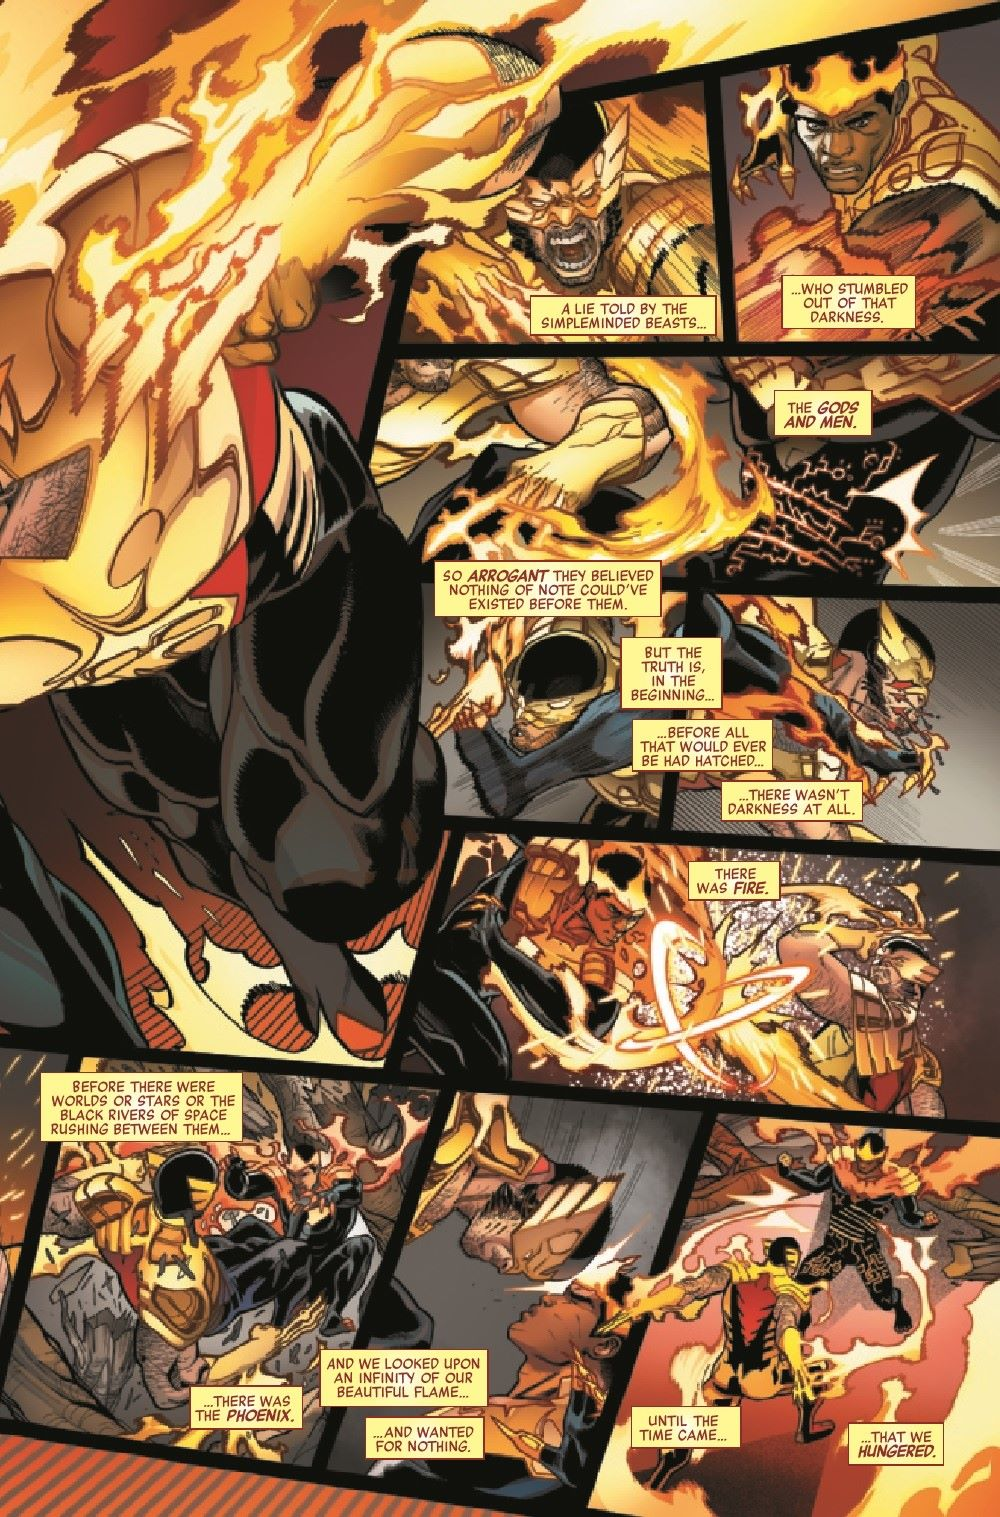 AVEN2018043_Preview-4 ComicList Previews: THE AVENGERS #43